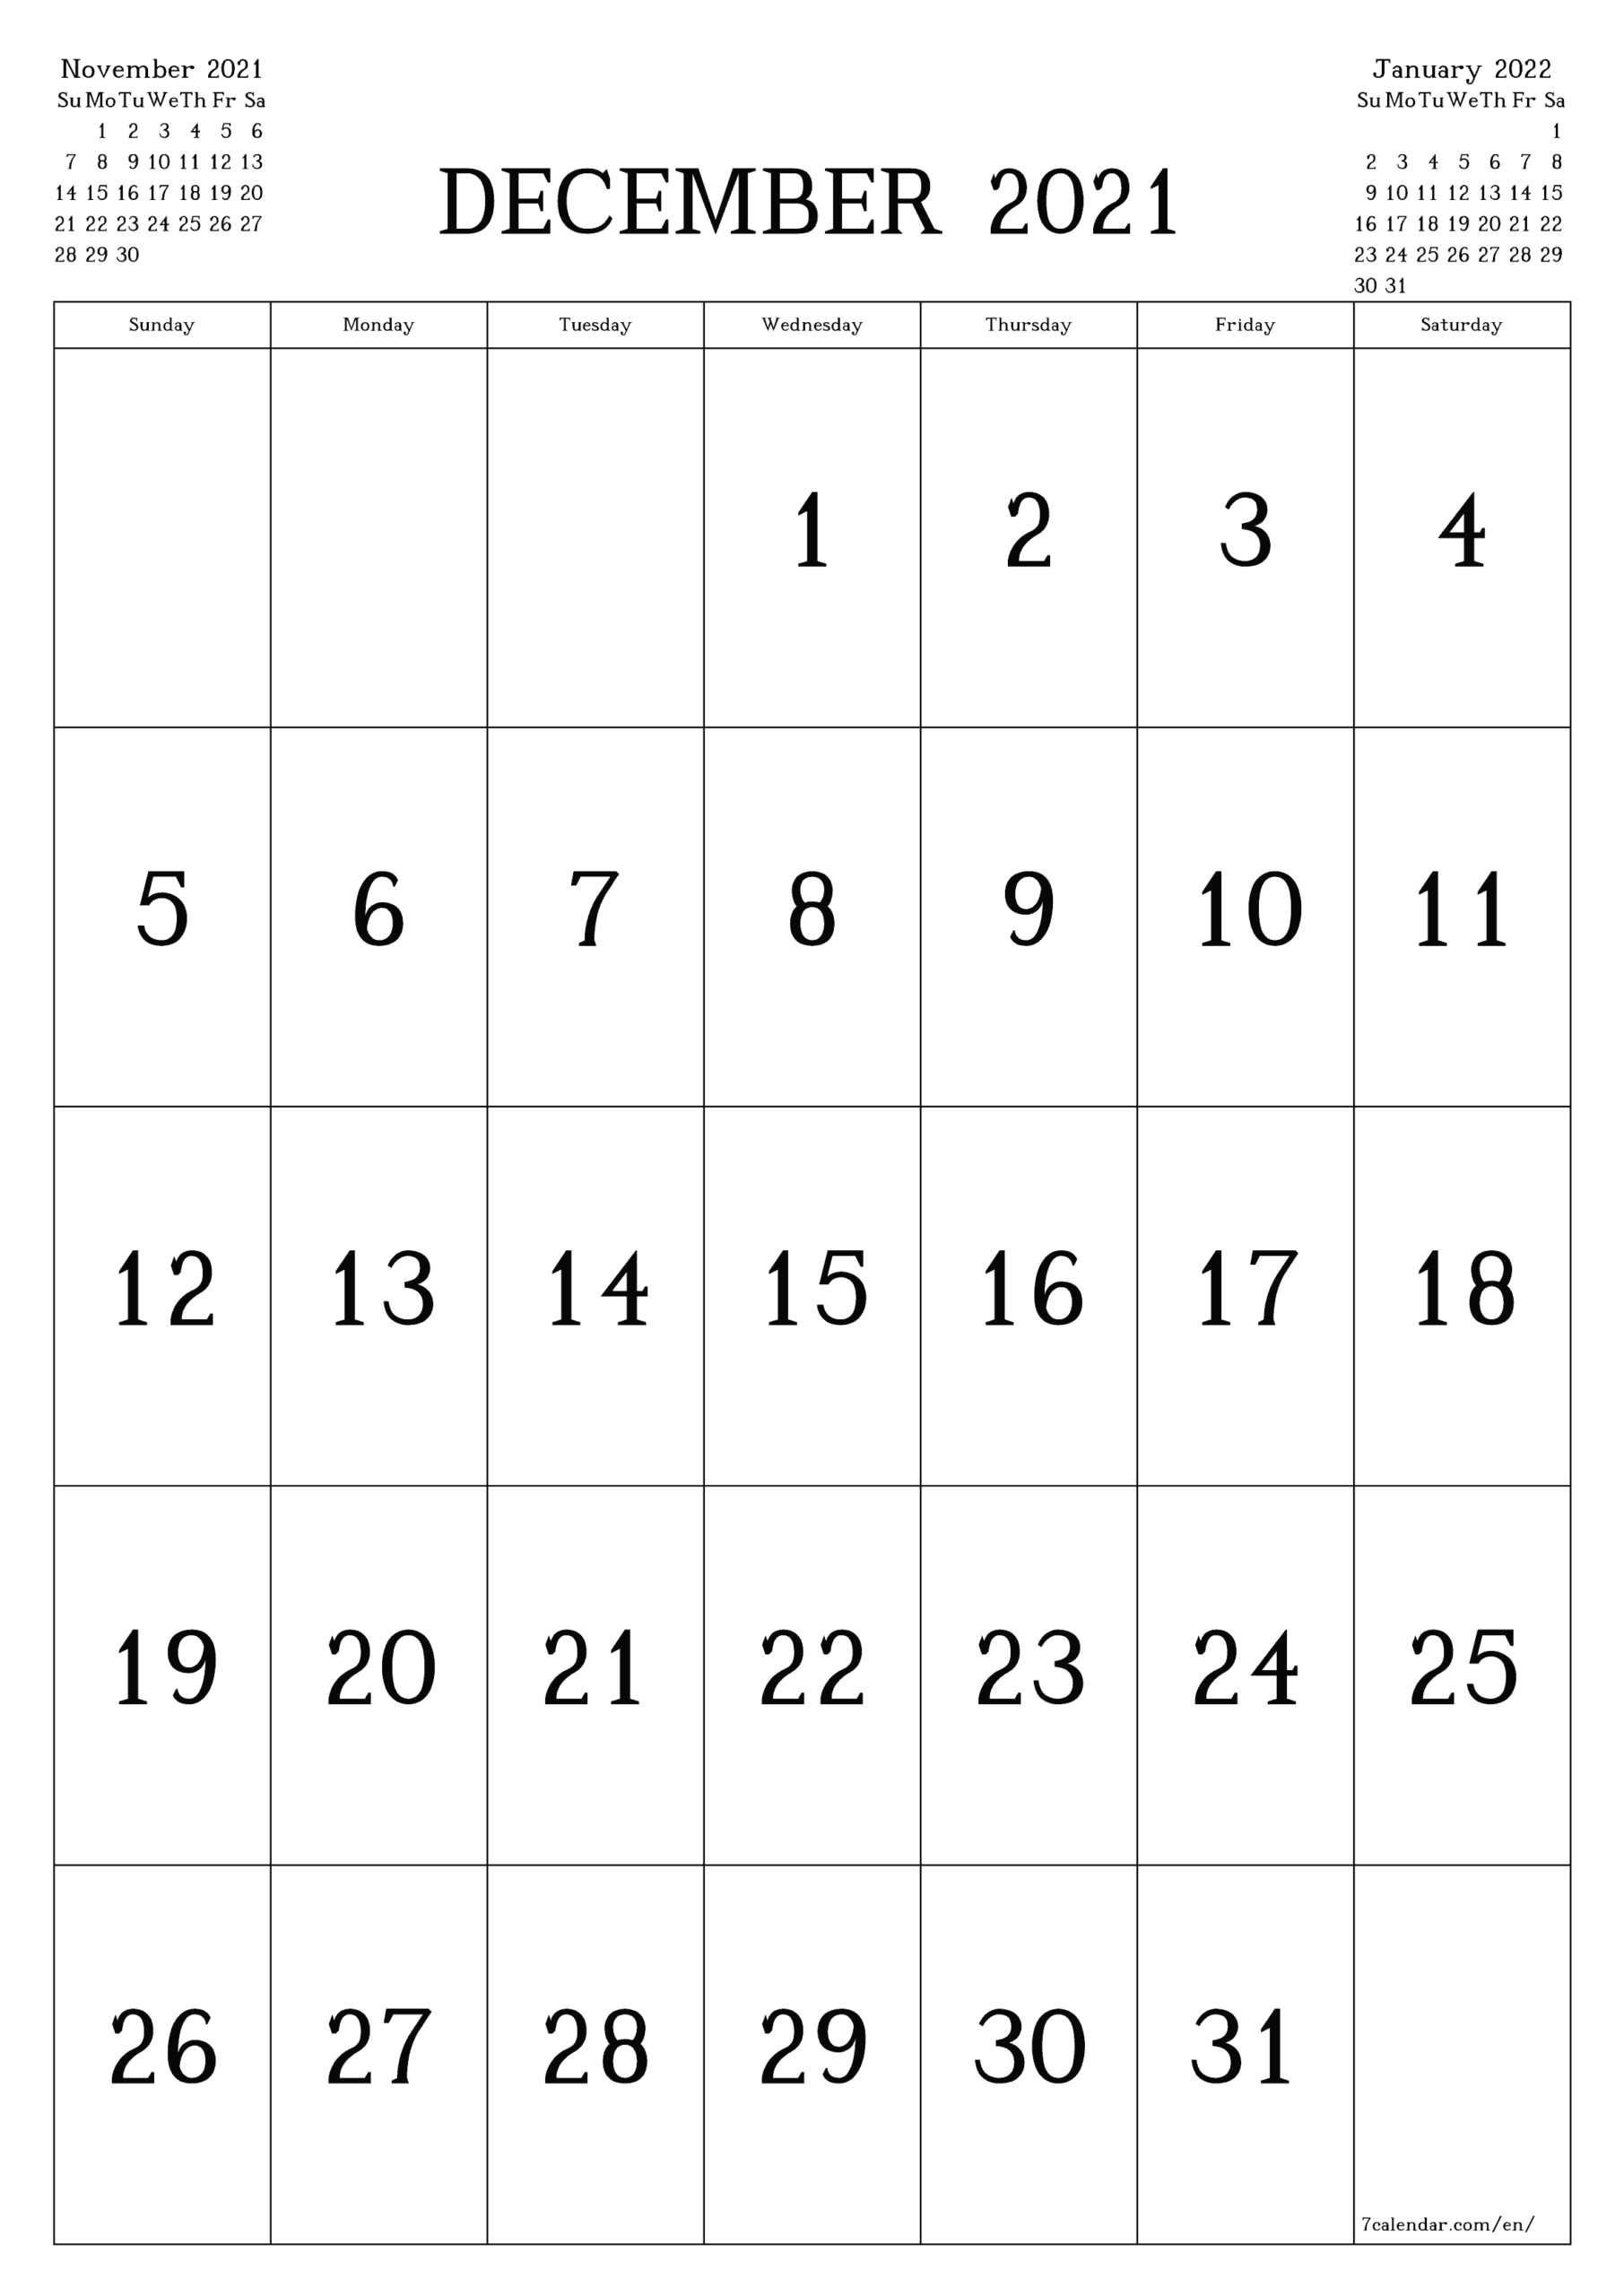 Free Printable Blank Monthly Calendar And Planner For regarding 3 Month Printed A3 Calendar 2021